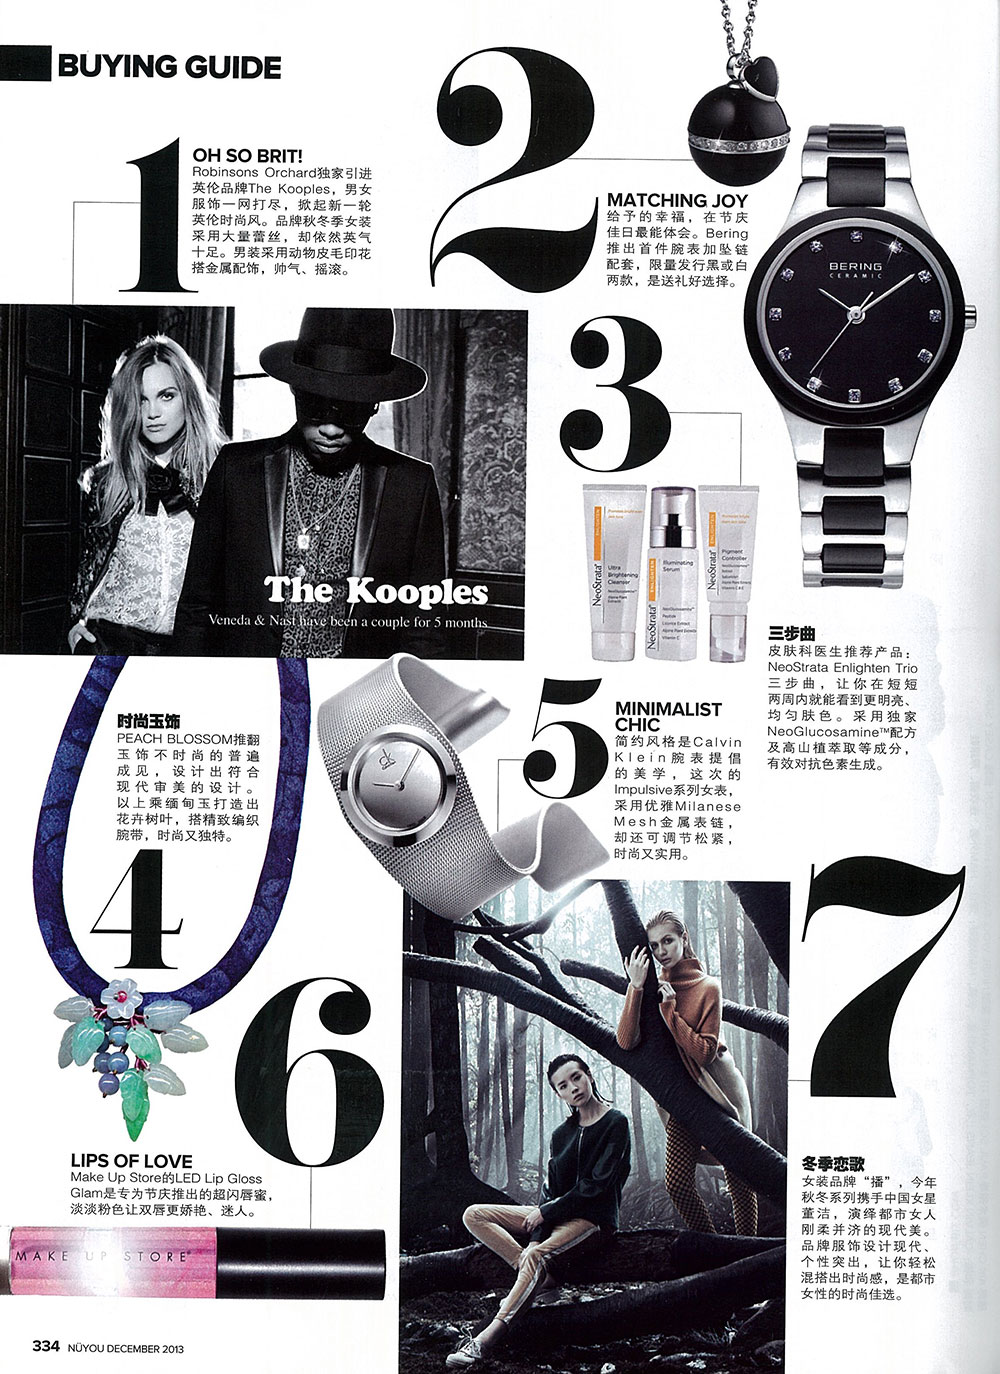 2013 12 - NUYOU Buying Guide